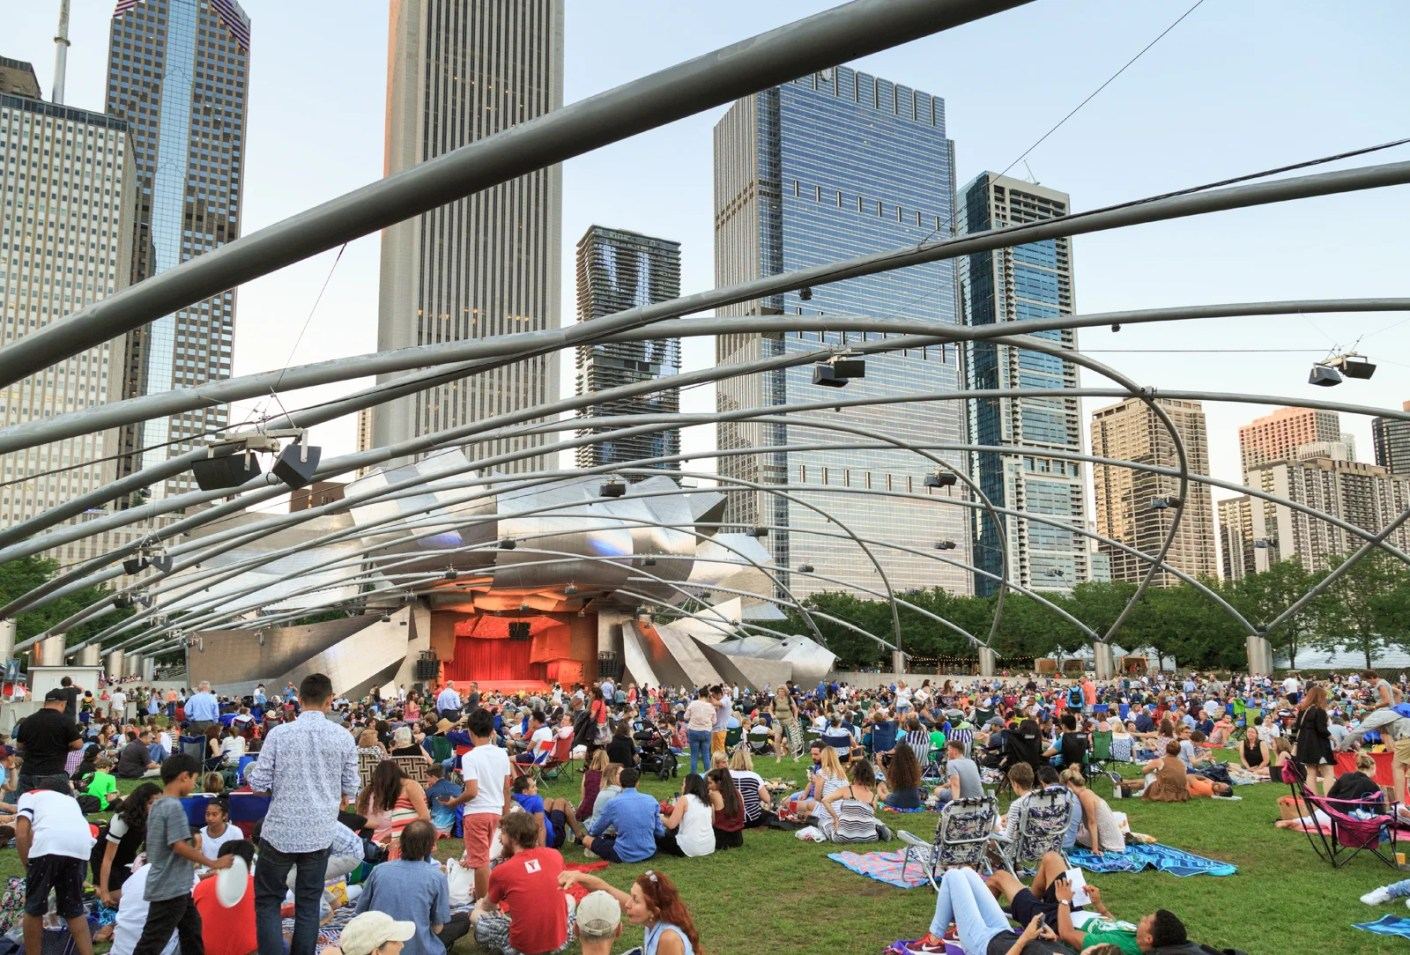 A crowd watching the Grant Park Symphony at the Jay Pritzker Pavilion in Chicago. (Photo by Education Images/UIG via Getty Images)